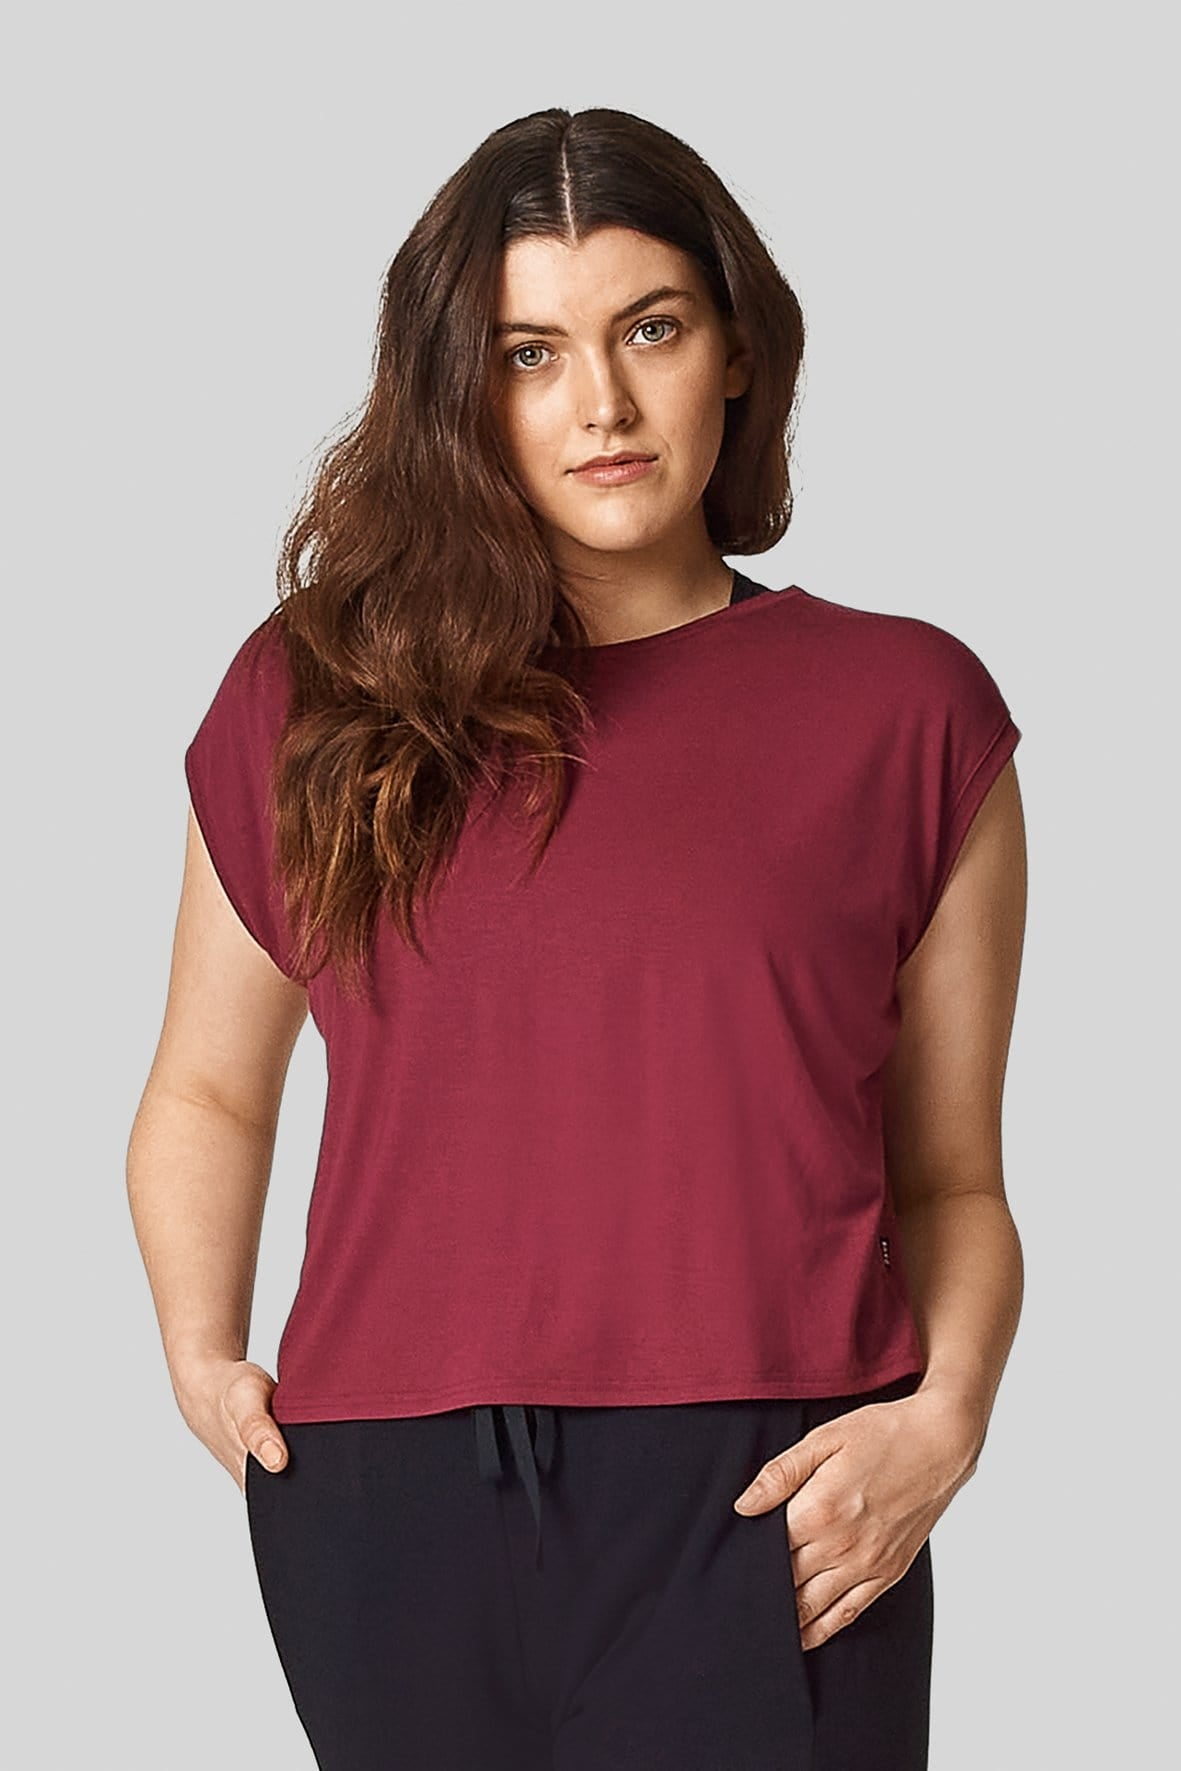 A brunette wears a wine coloured, red tee with a boxy cut.